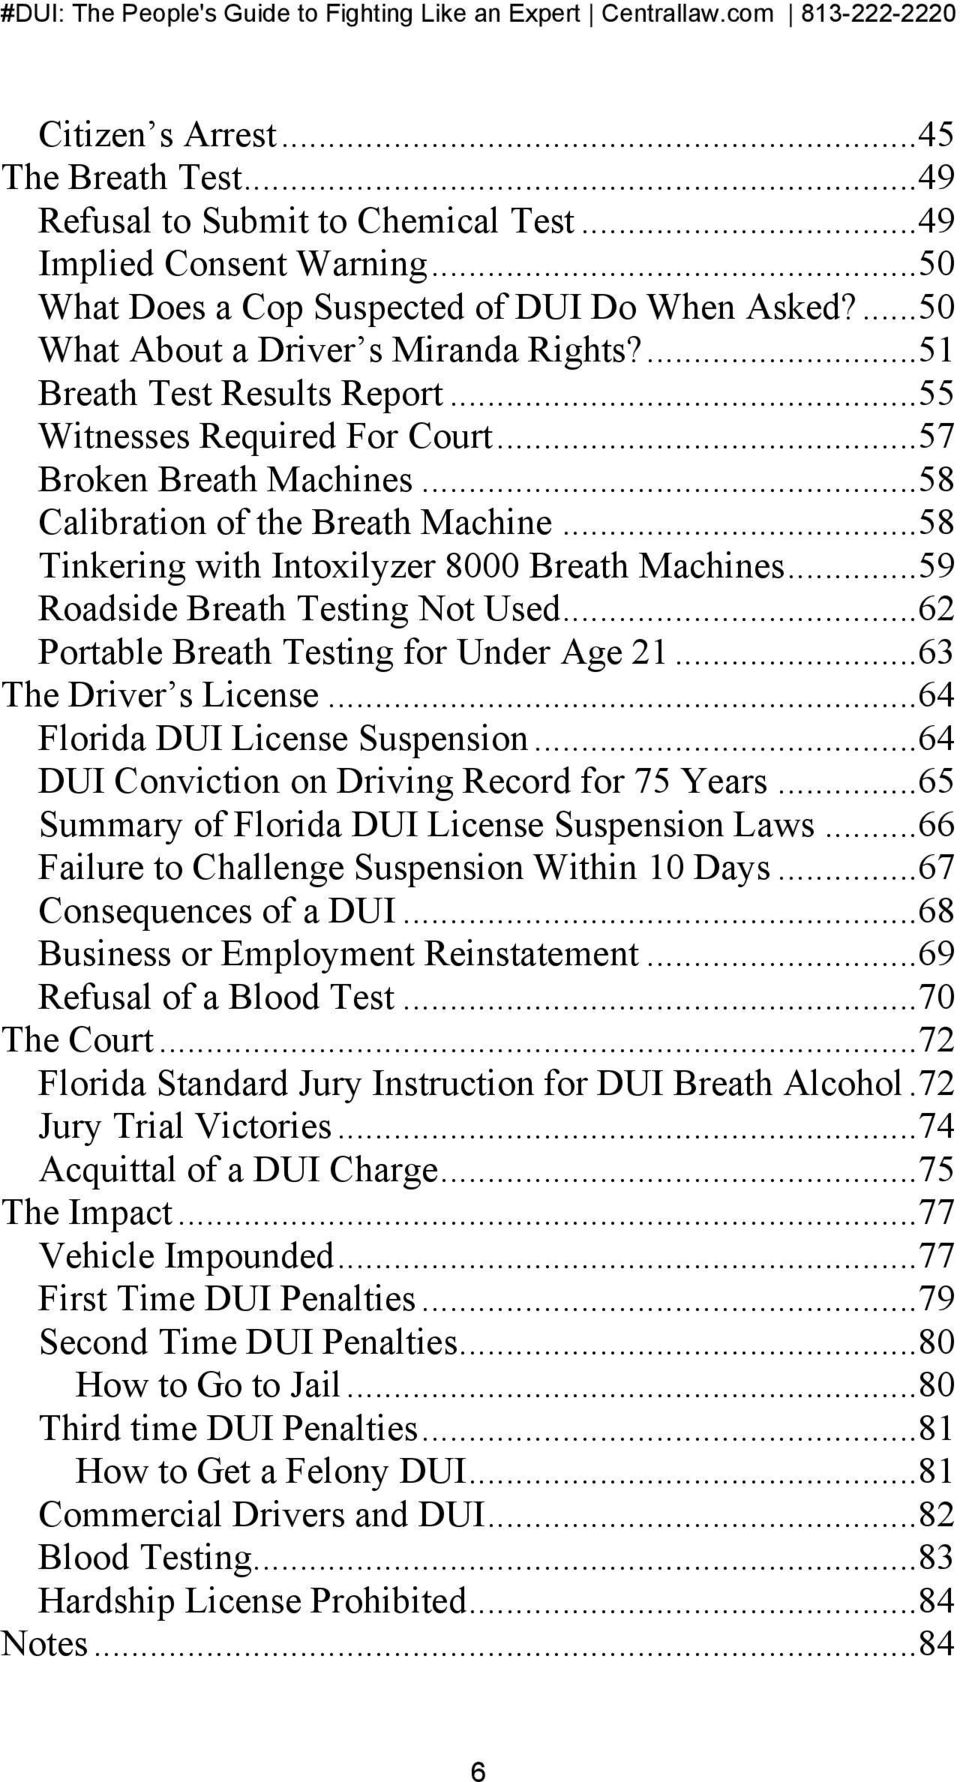 ..59 Roadside Breath Testing Not Used...62 Portable Breath Testing for Under Age 21...63 The Driver s License...64 Florida DUI License Suspension...64 DUI Conviction on Driving Record for 75 Years.